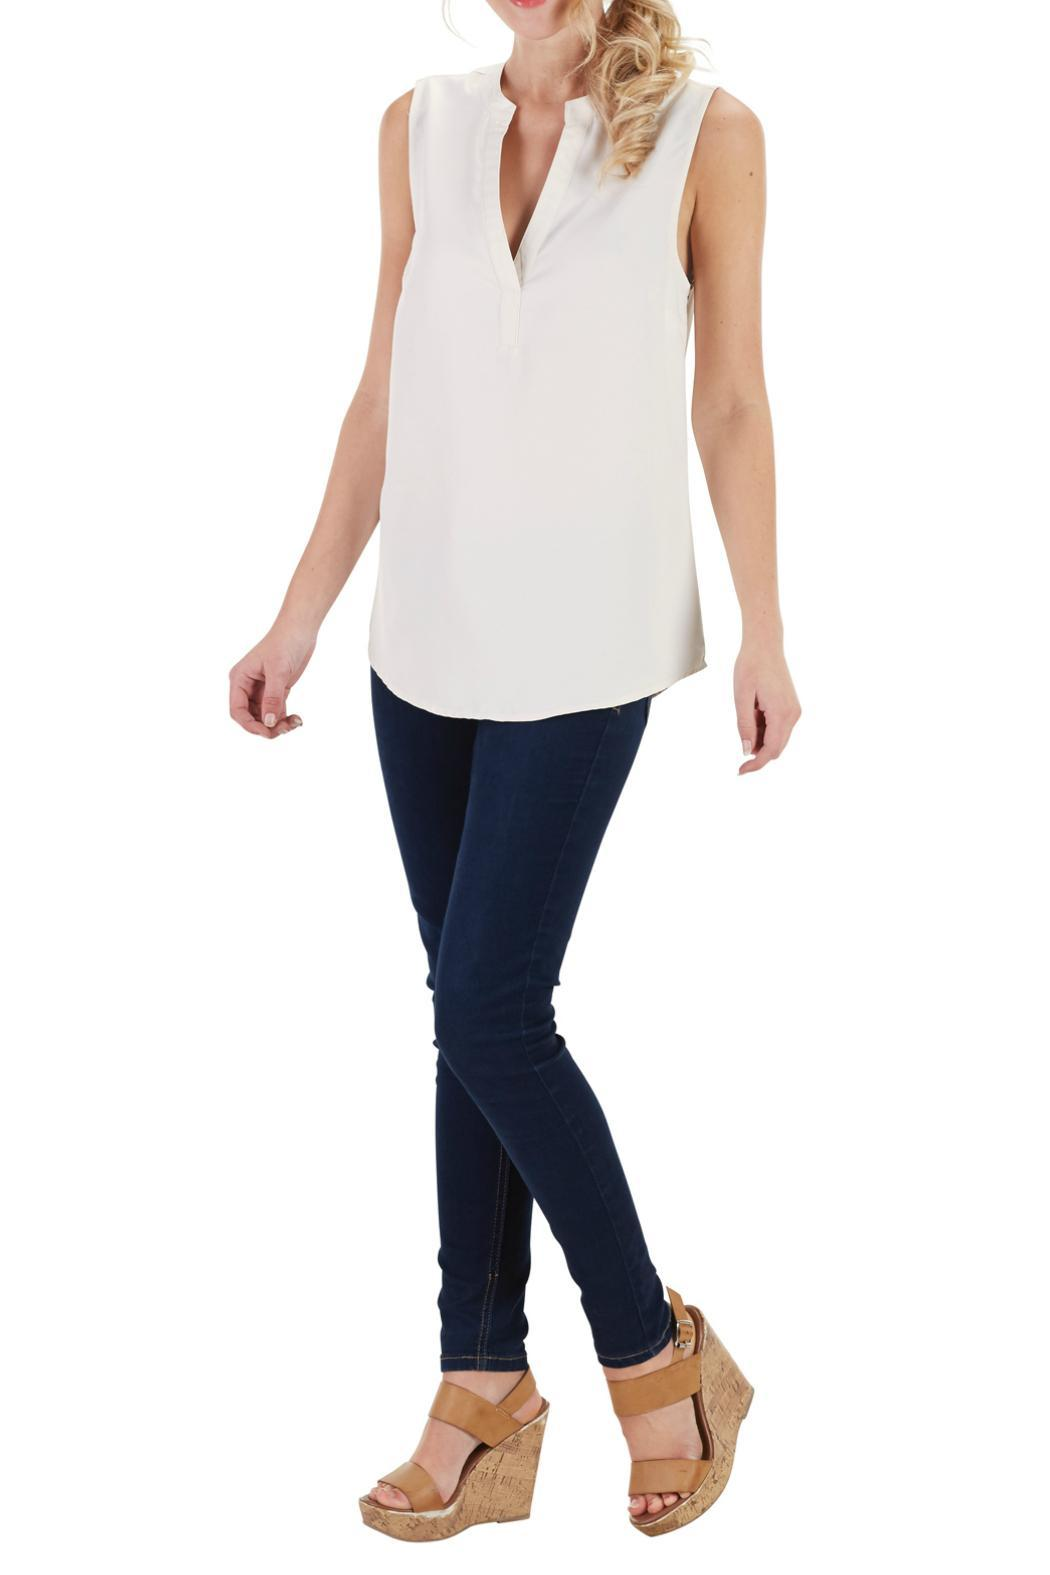 Mud Pie Sleeveless V Neck Blouse - Front Cropped Image